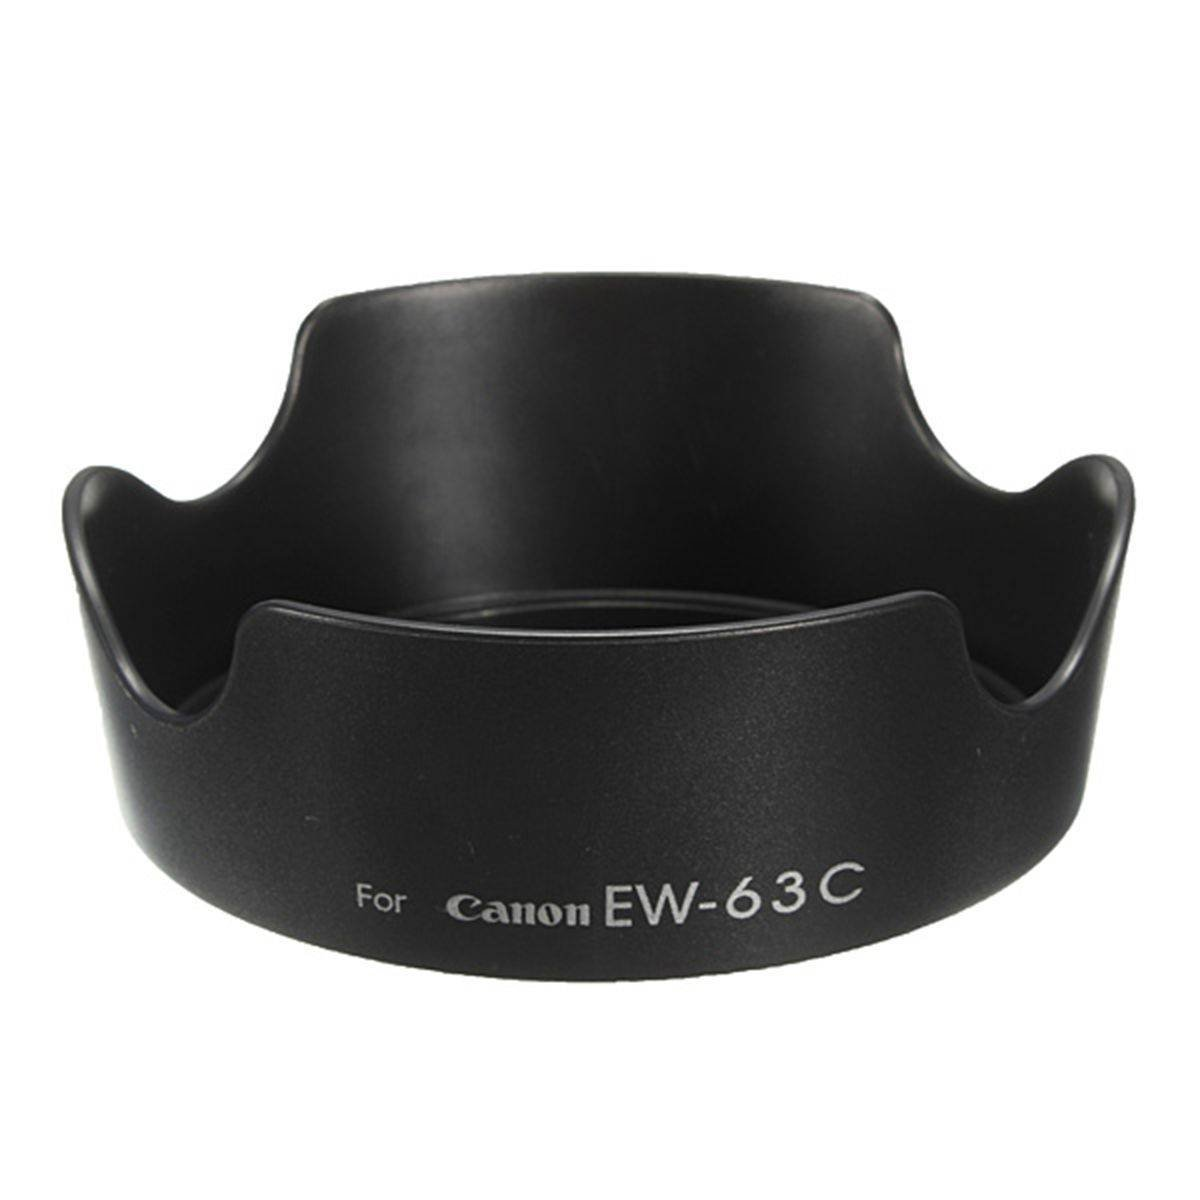 Hot Deal Lens Hood Camera Lens Hood EW-63C EW63C for Canon EF-S 18-55mm F / 3.5-5.6 IS STM